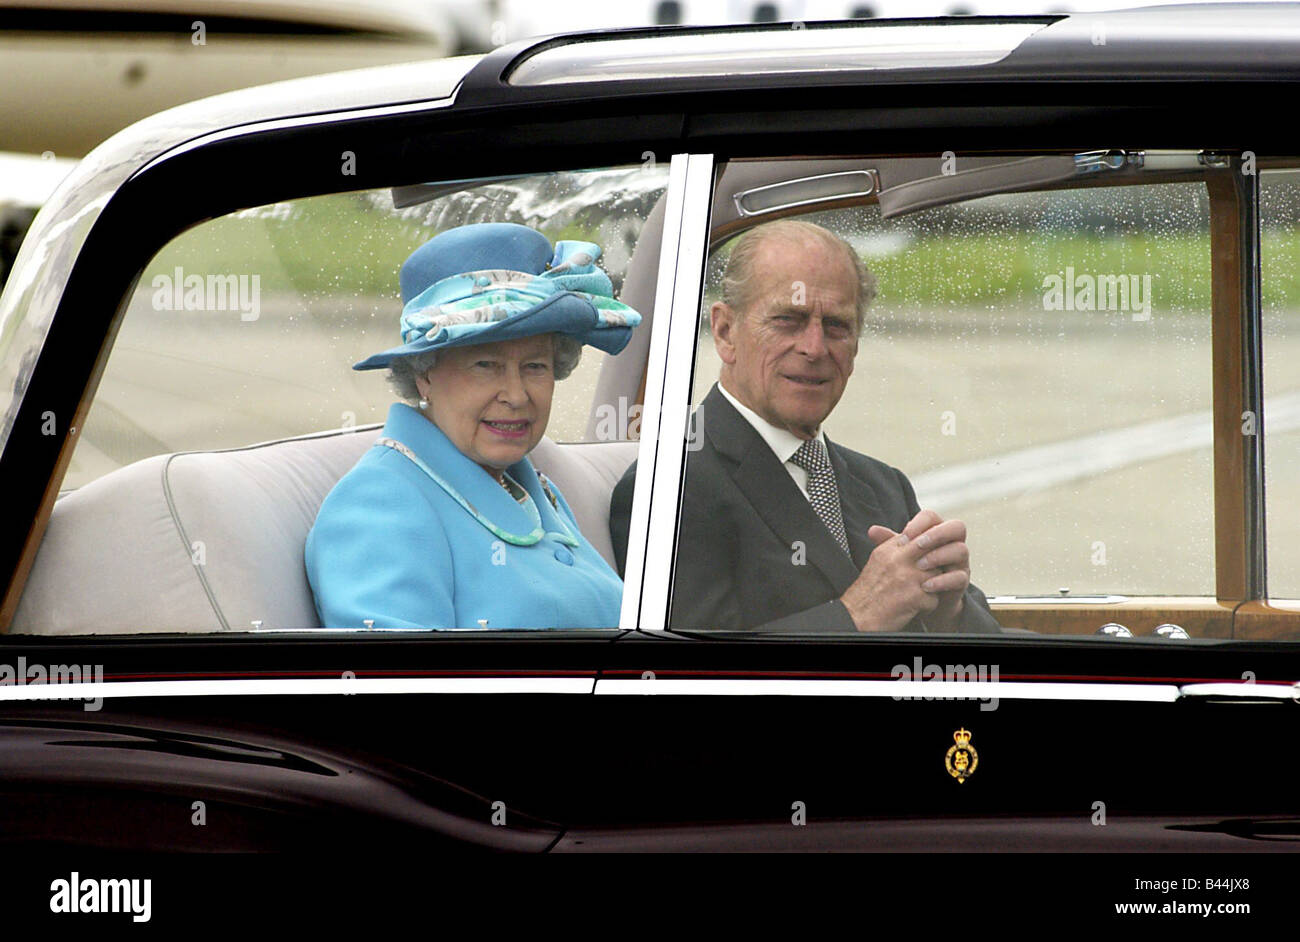 HRH Queen Elizabeth II May 2002 At Glasgow airport accompanied by Prince Philip Duke of Edinburgh Wearing blue hat - Stock Image